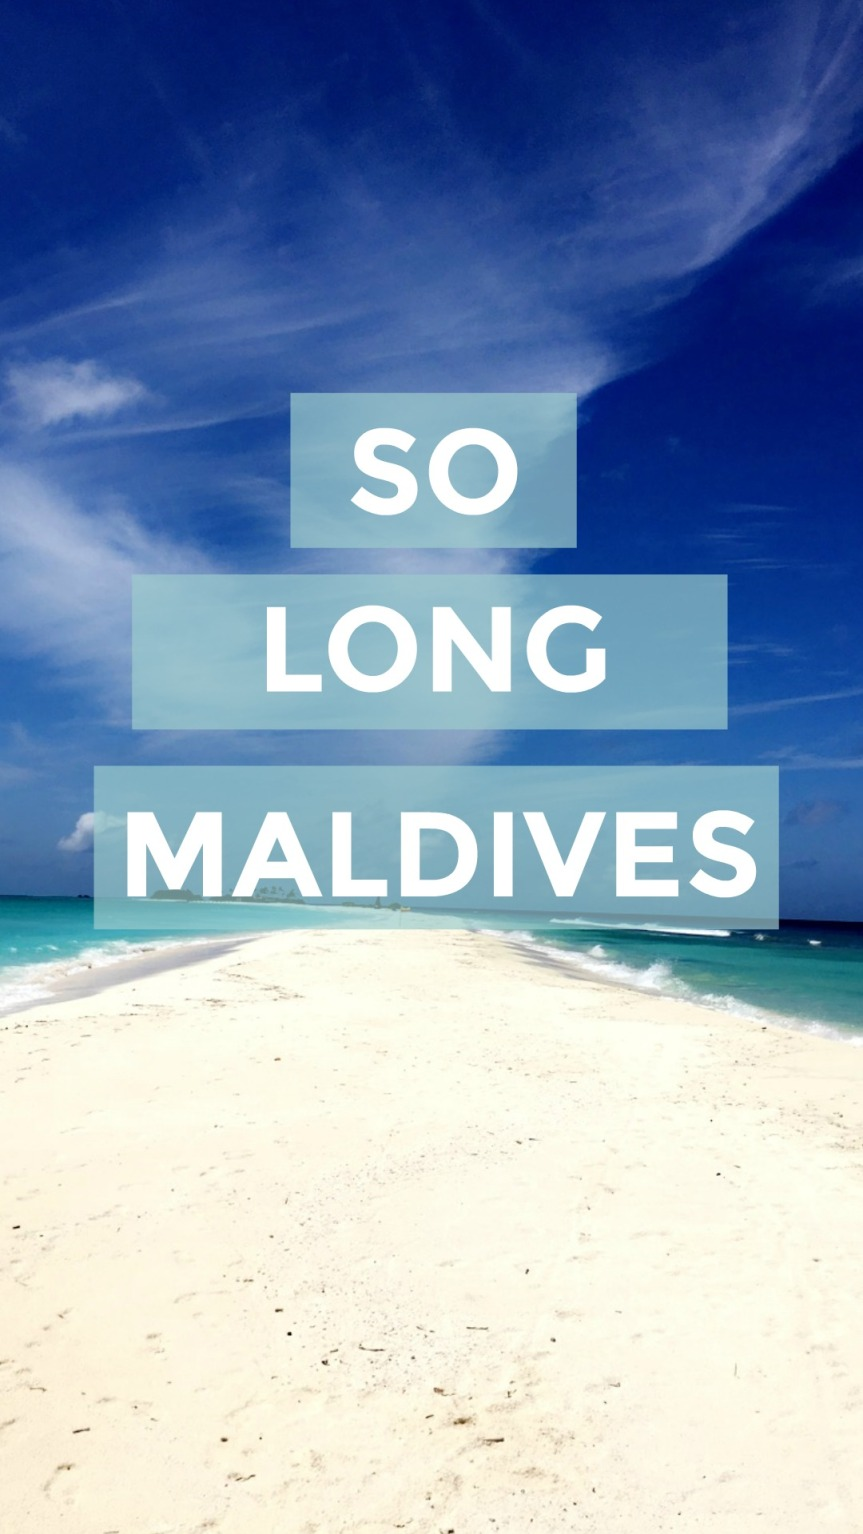 So long maldives